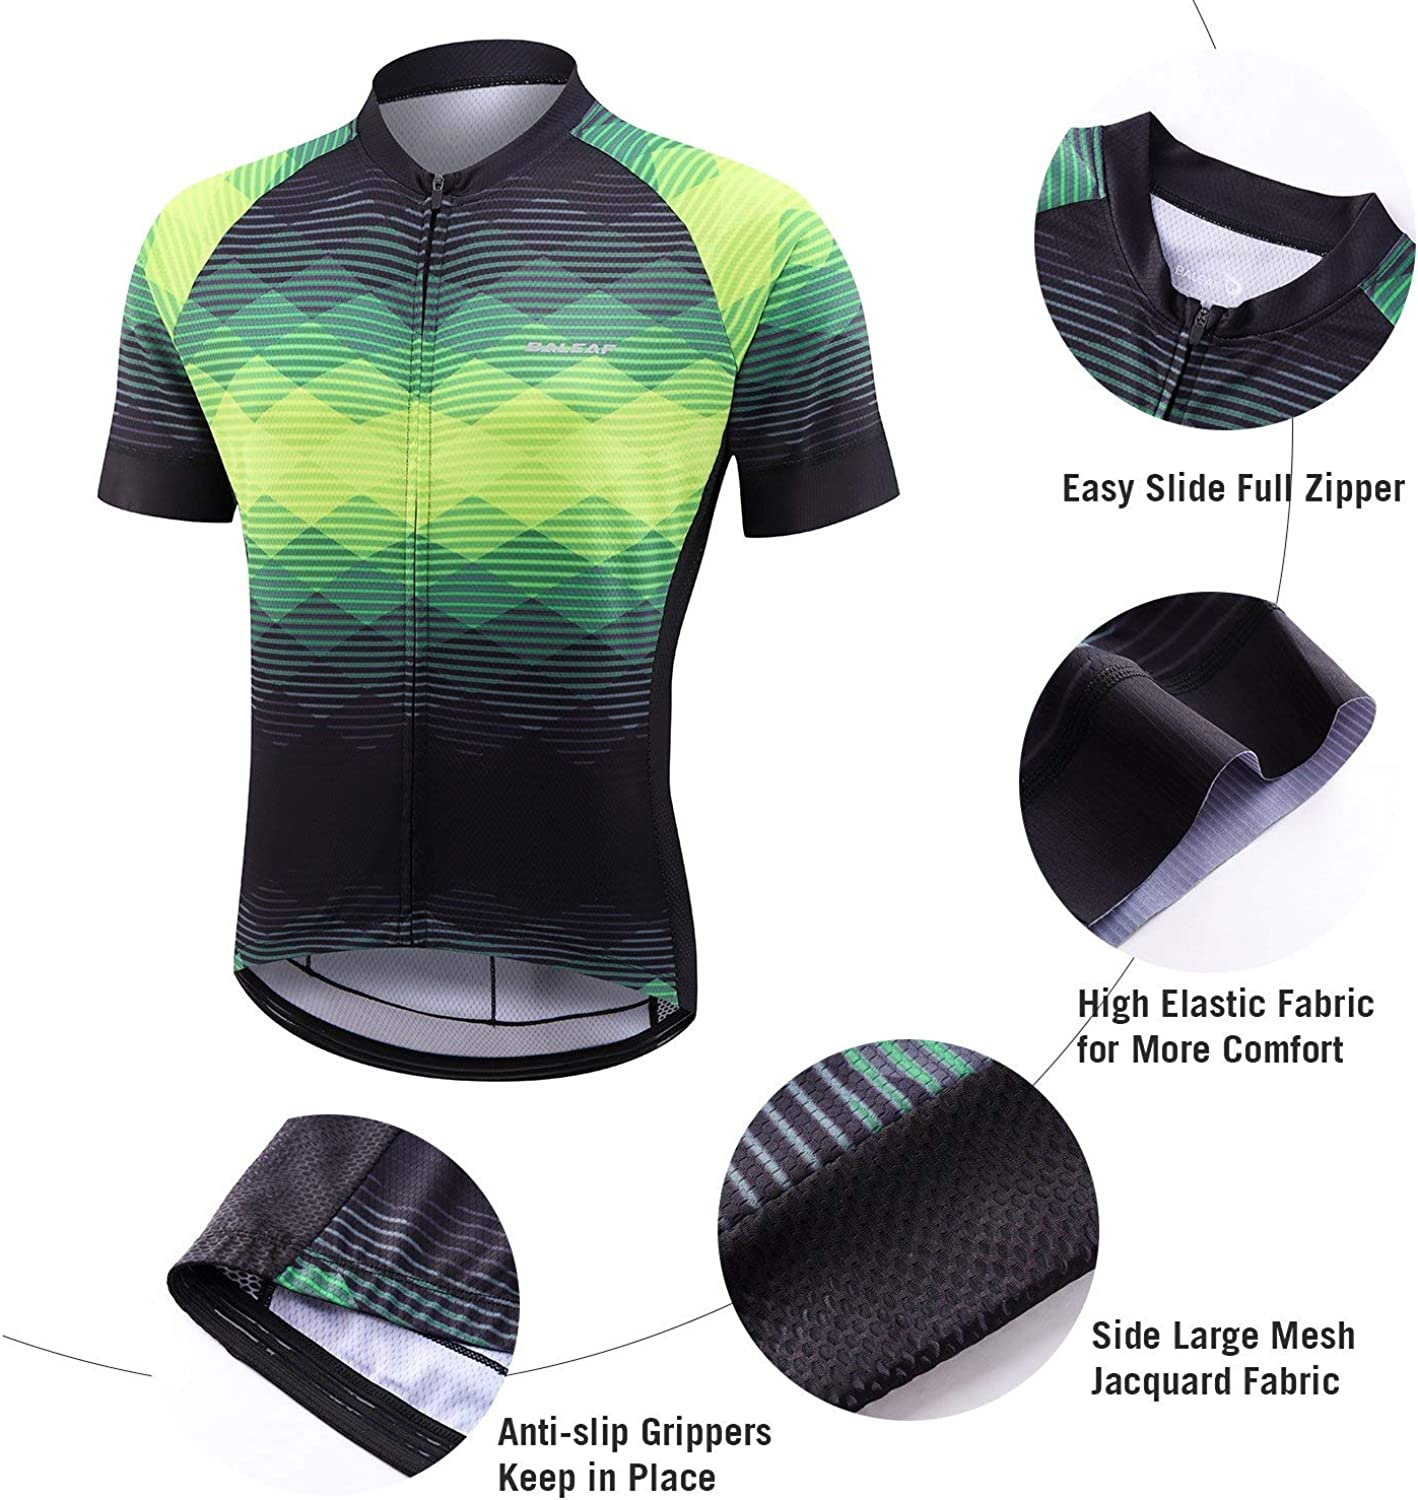 BALEAF Men's Cycling Jersey Set with 4D Gel Padded Shorts Cycling Clothes Shirts Bicycle Short Sleeve Set Road Bike: Clothing